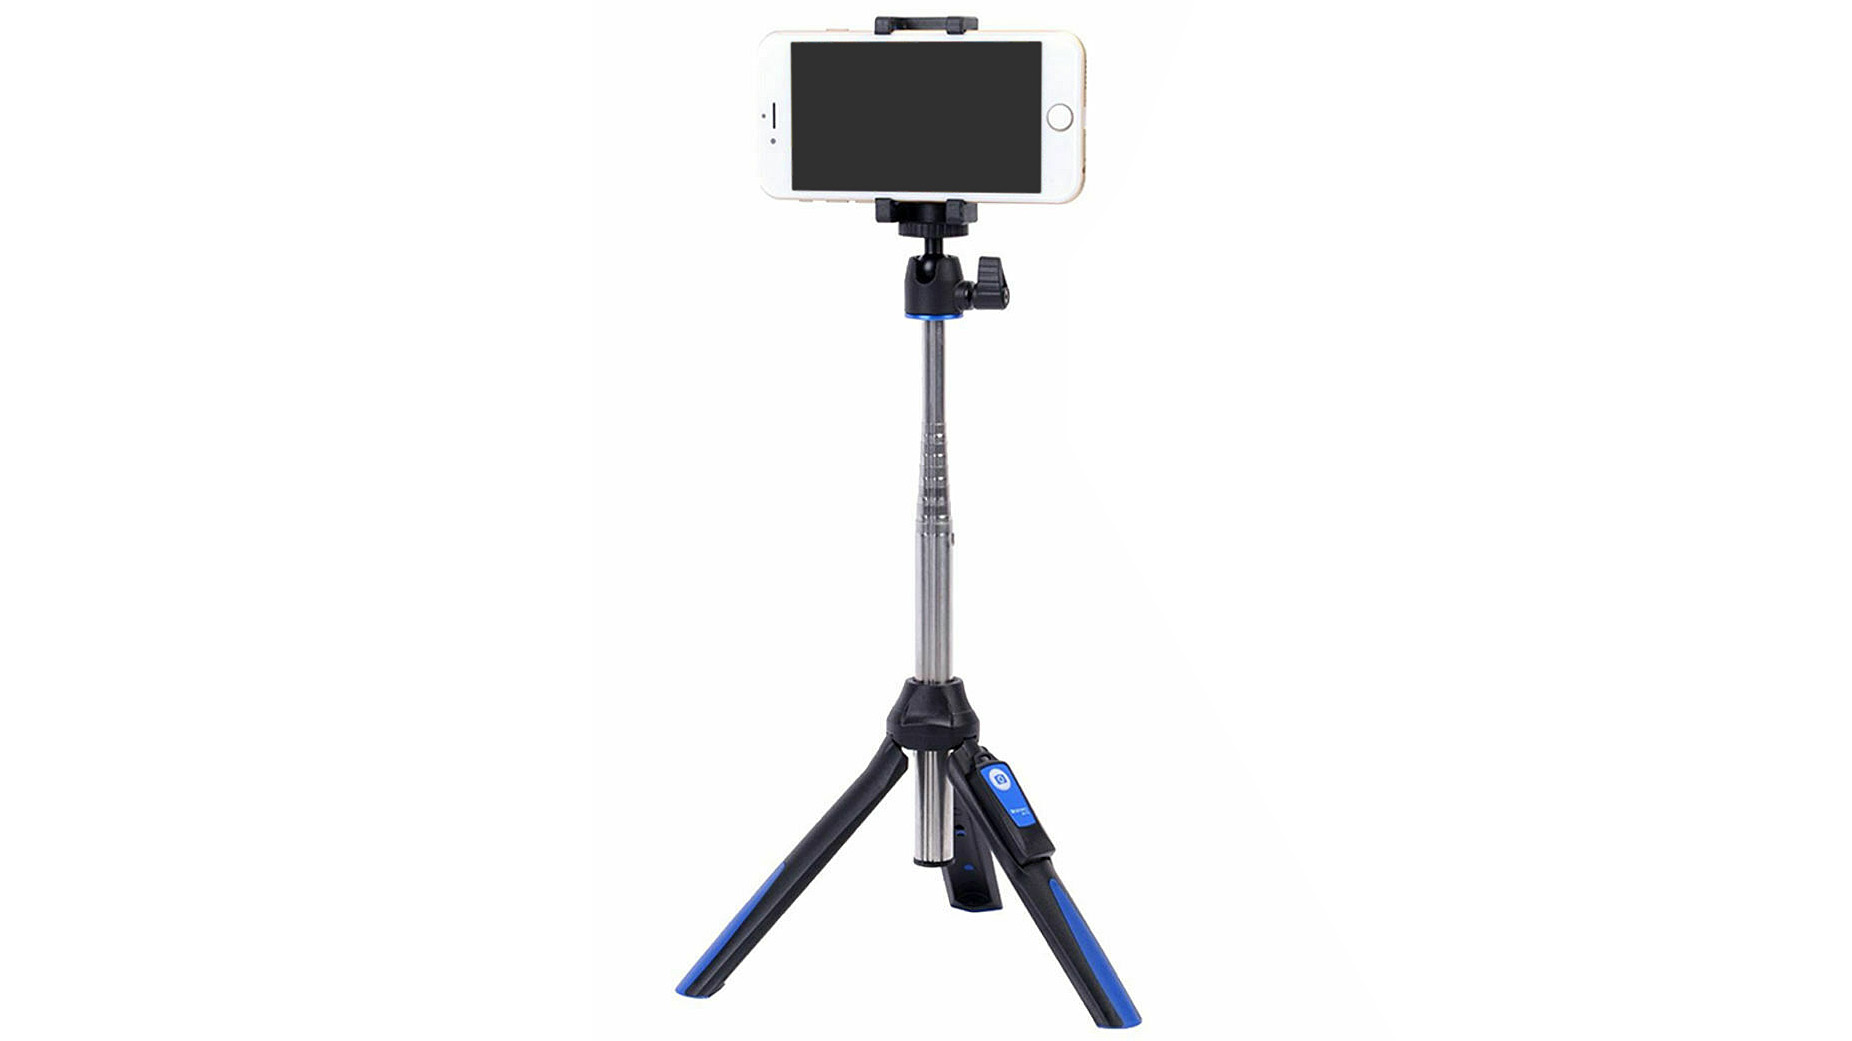 Best smartphone tripods: Benro BK10 Mini Tripod and Selfie Stick